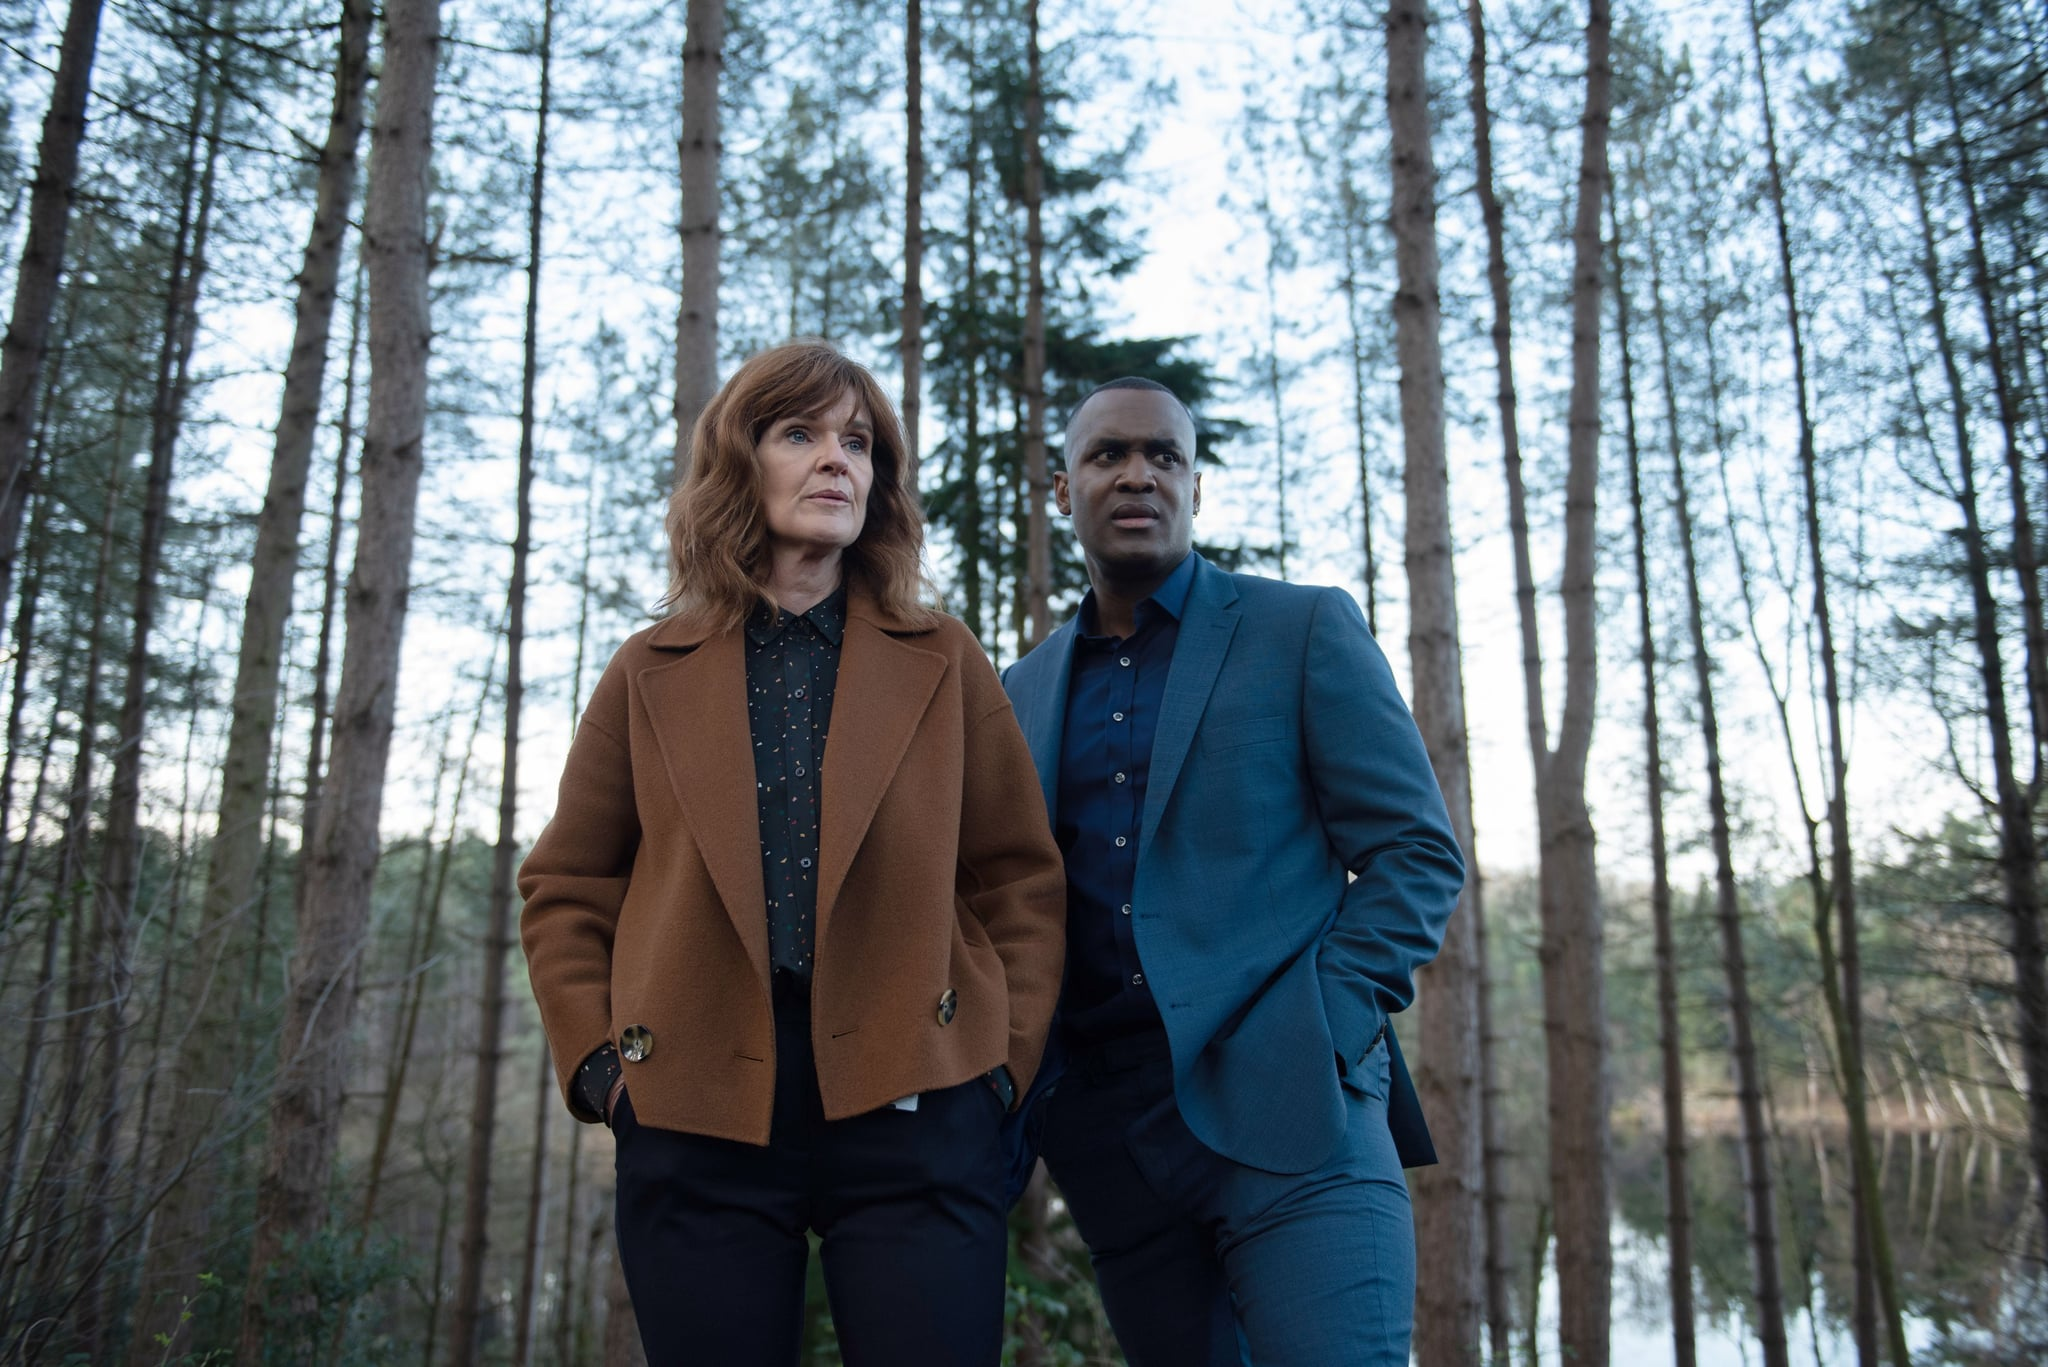 THE STRANGER, from left: Siobhan Finneran, Kadiff Kirwan, (Season 1, aired January 30, 2020). photo: Netflix / Courtesy Everett Collection